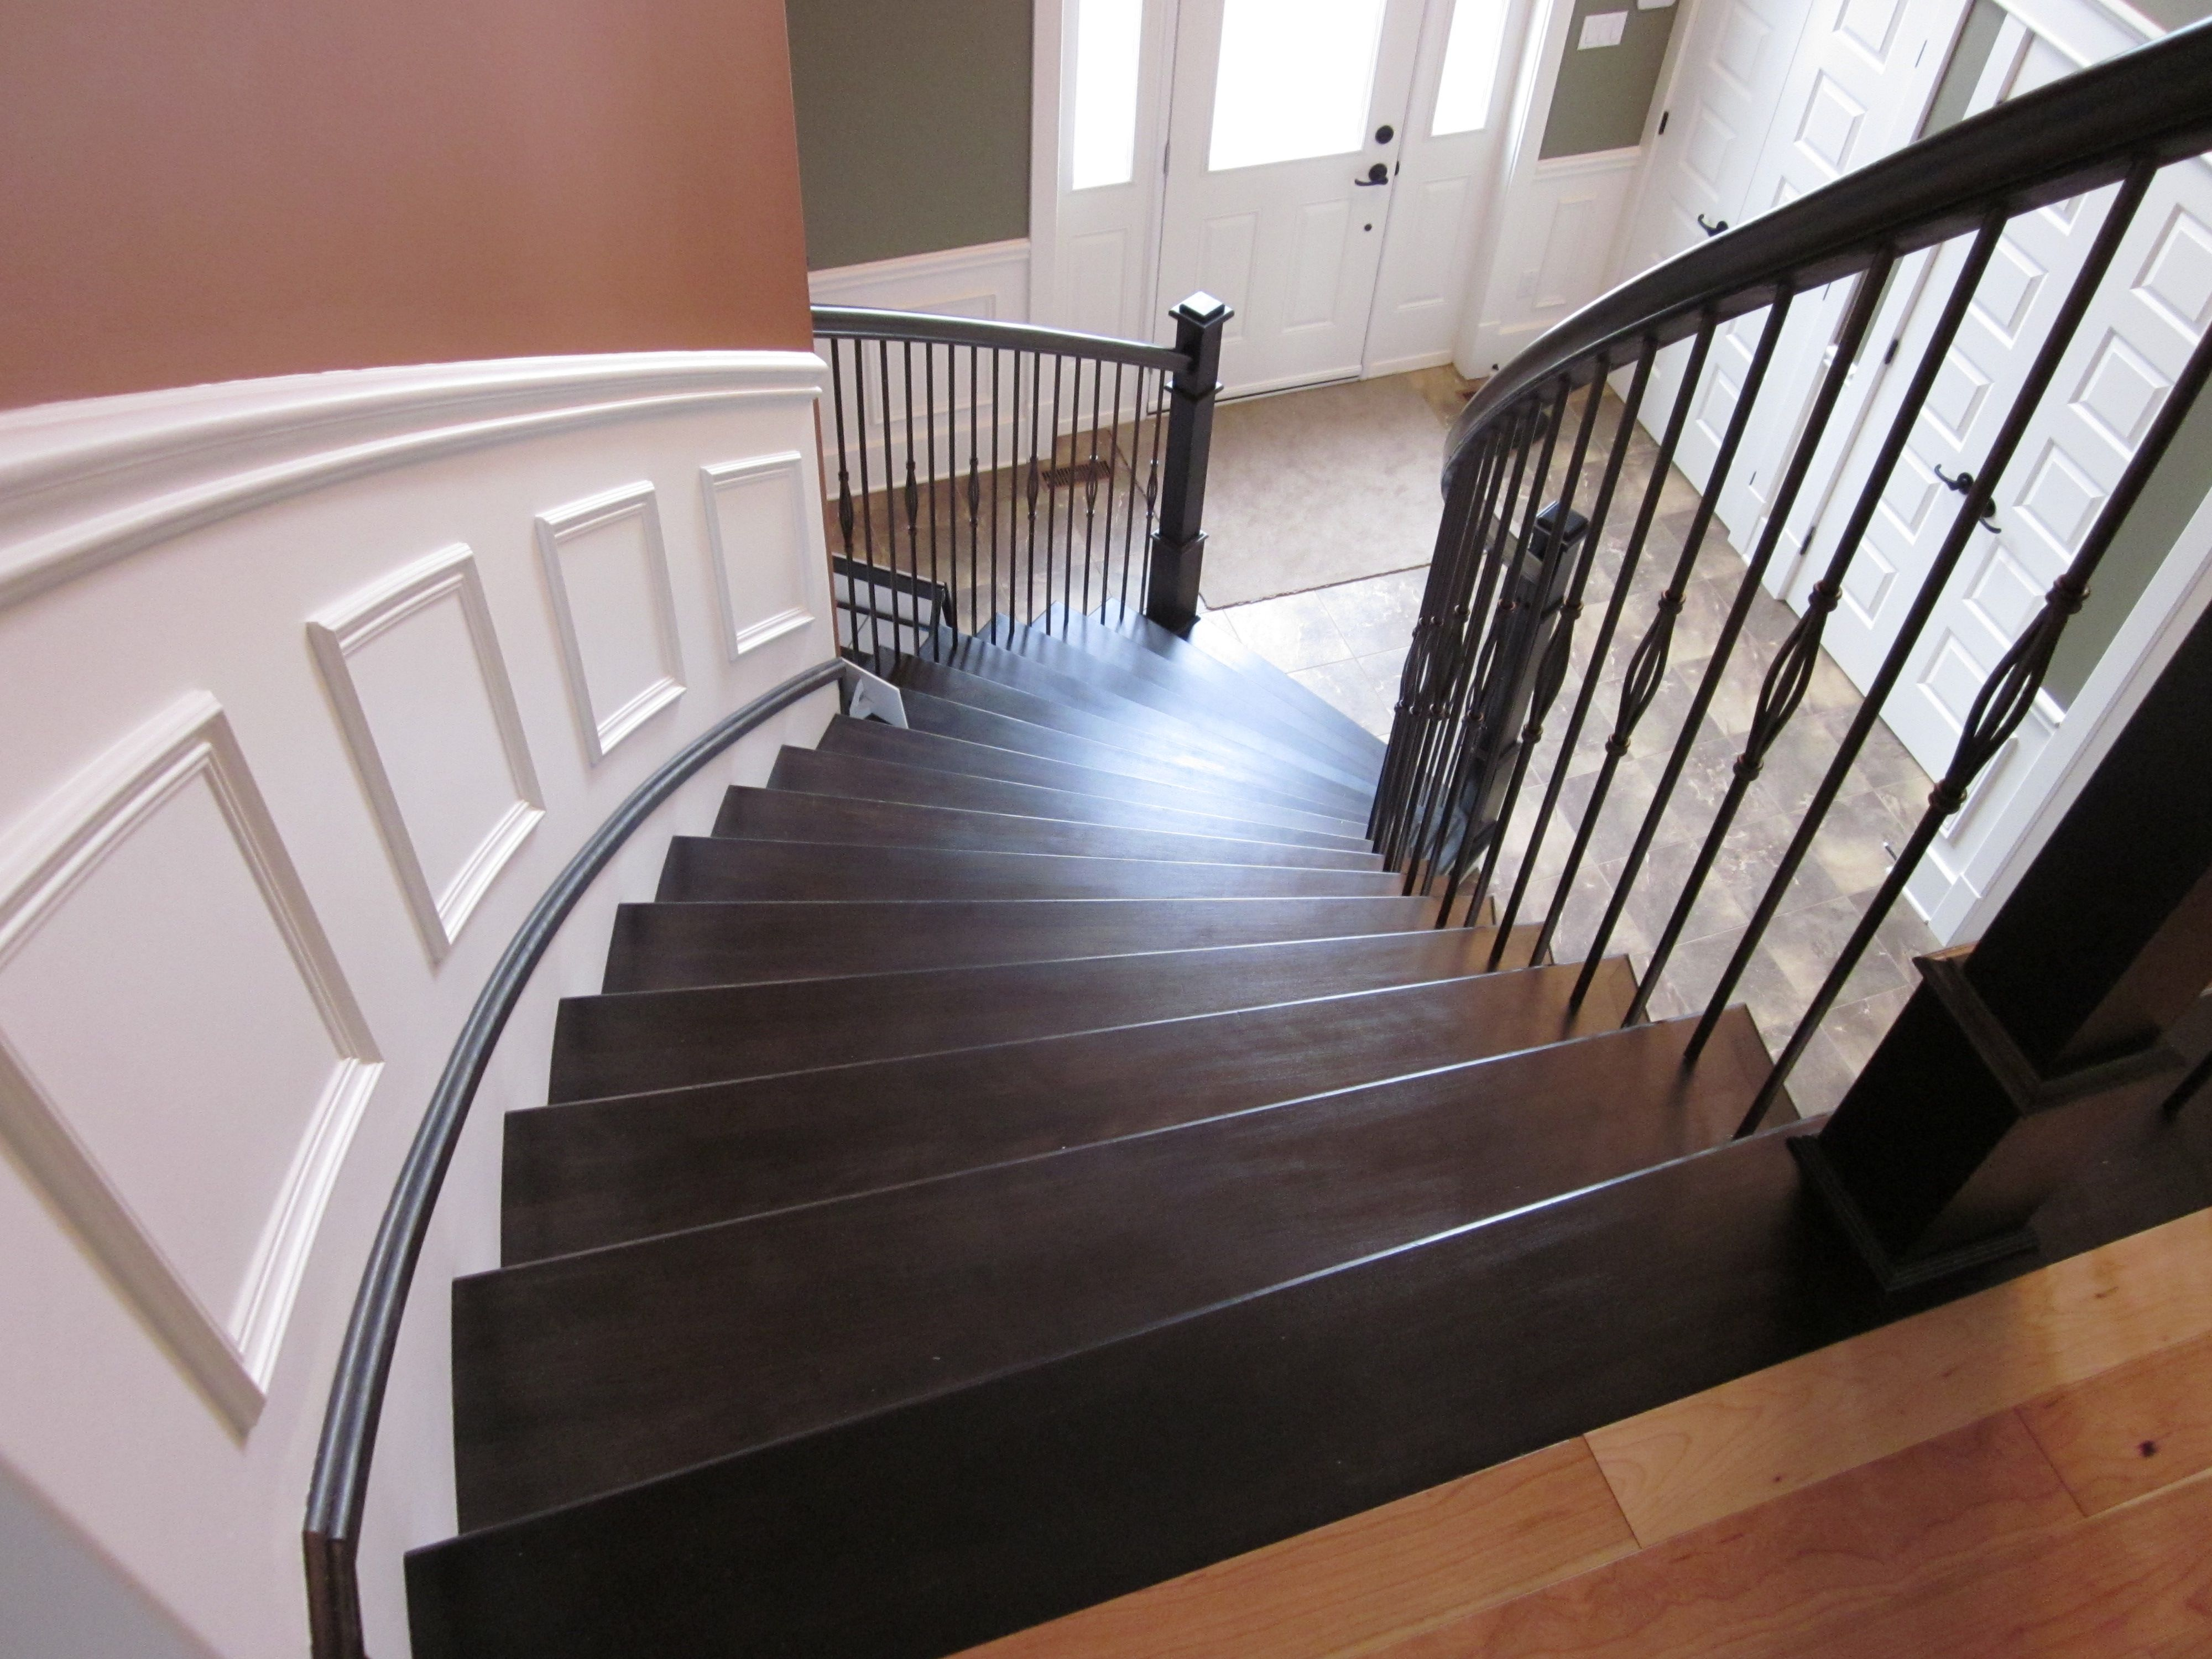 Curved Staircase With Painchaud Newels And Decorative Metal Balusters